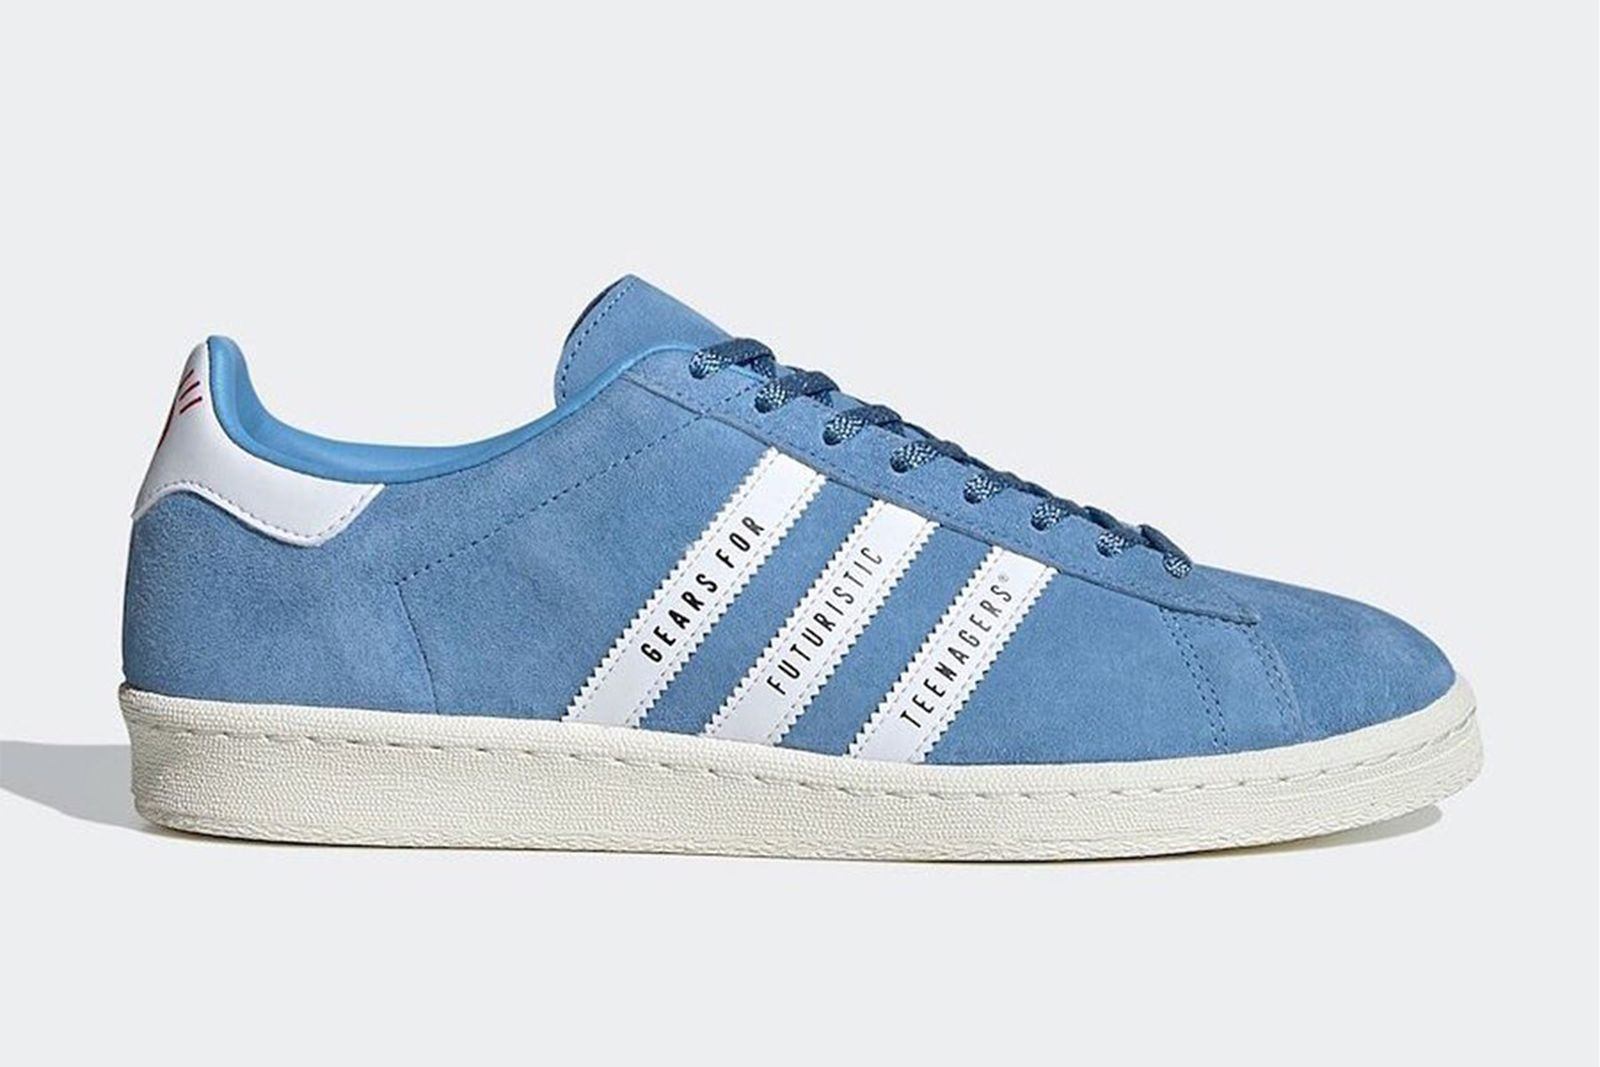 Human Made x adidas Campus in light blue suede